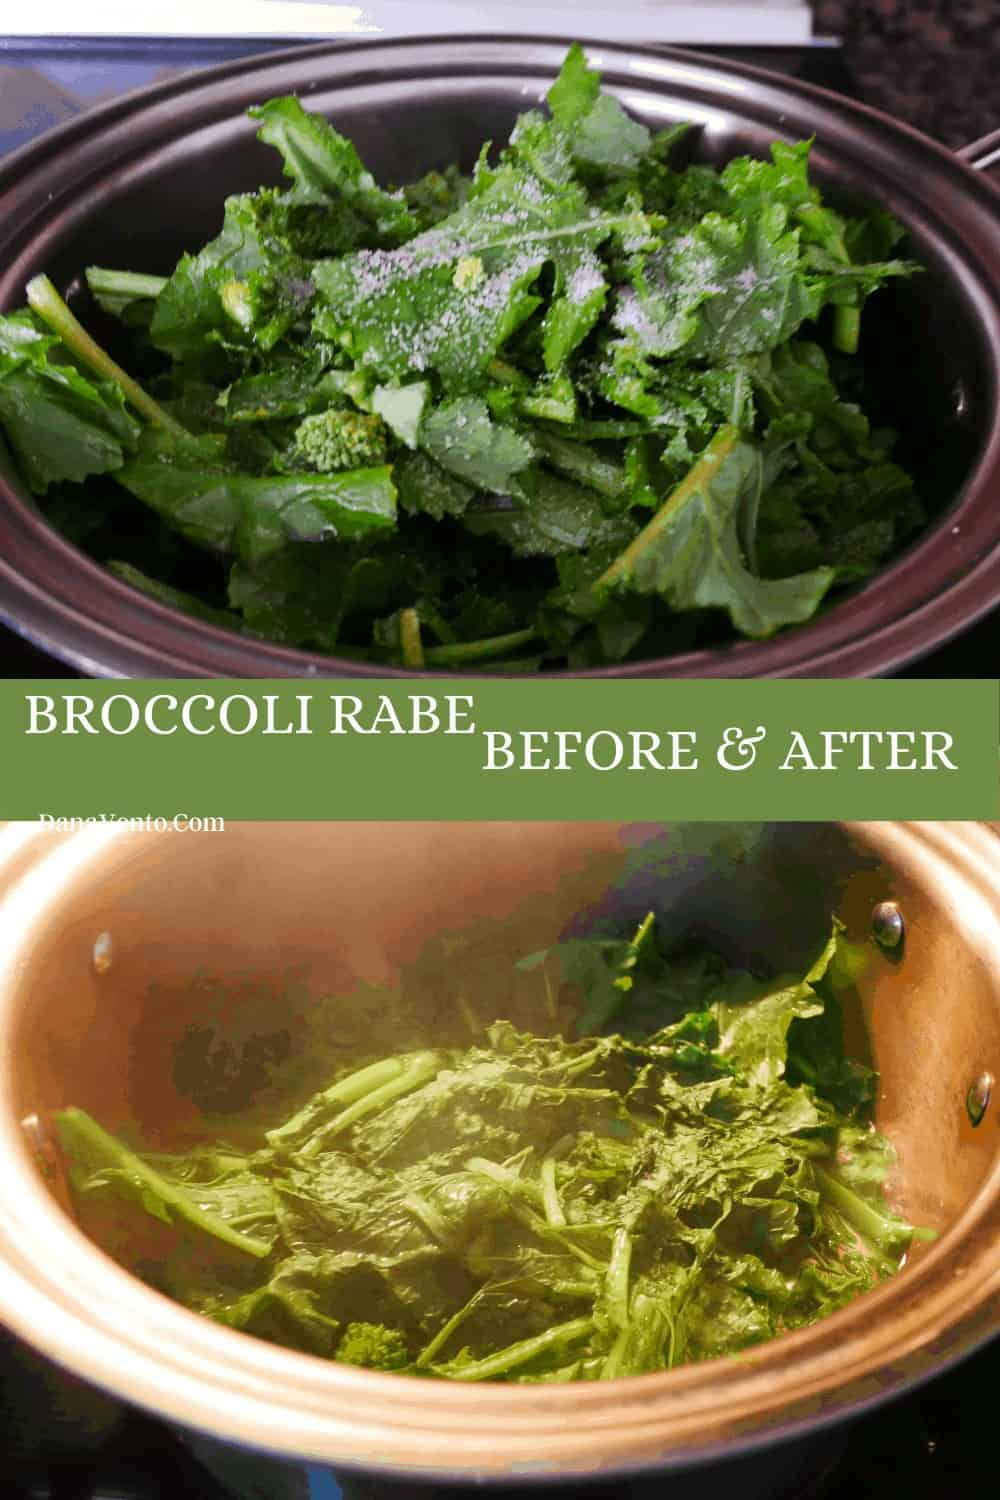 sauteed broccoli rabe superfood before being cooked and after being cooked.